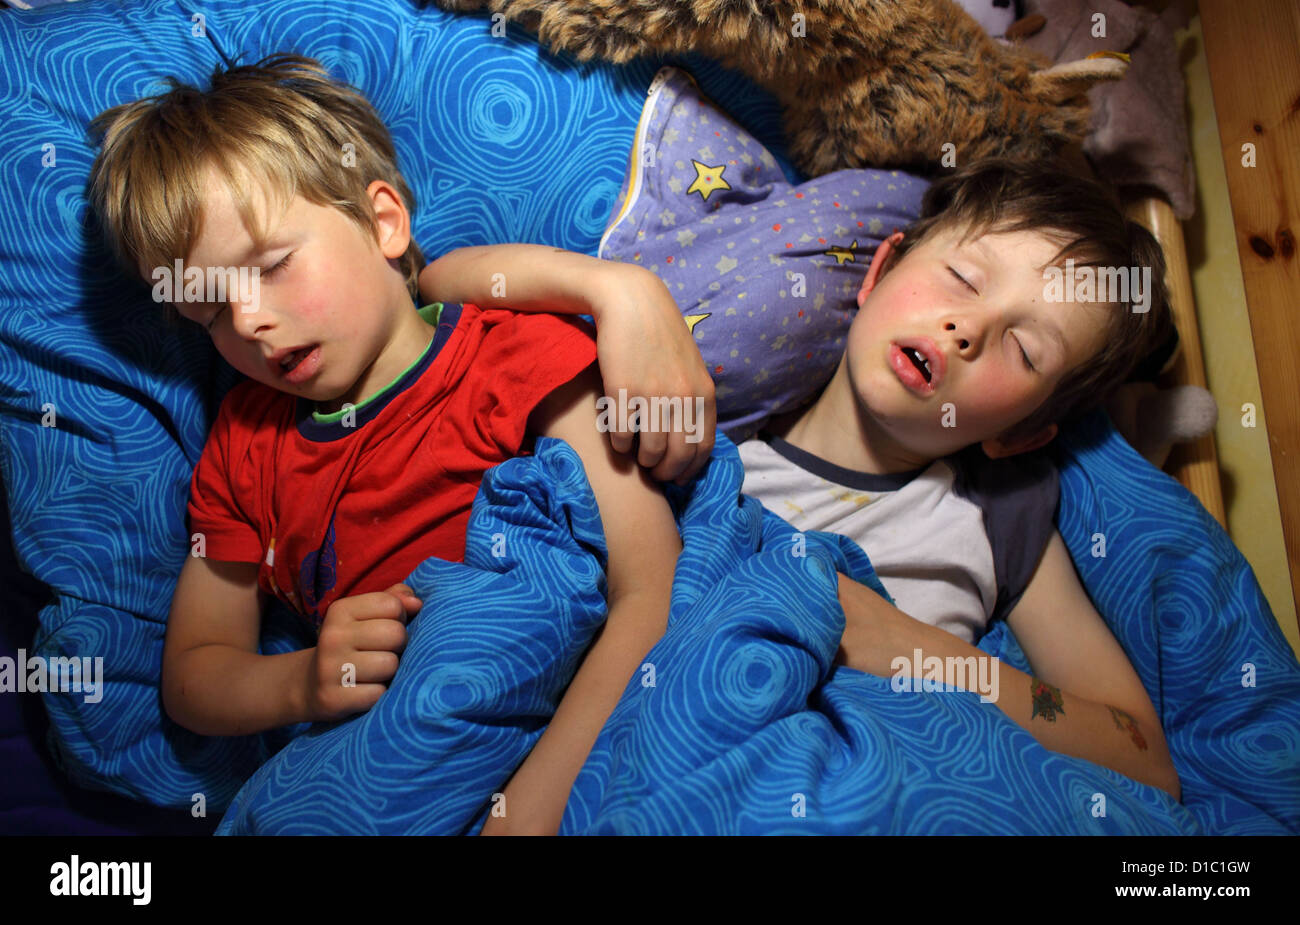 Berlin, Germany, children sleep together in one bed - Stock Image